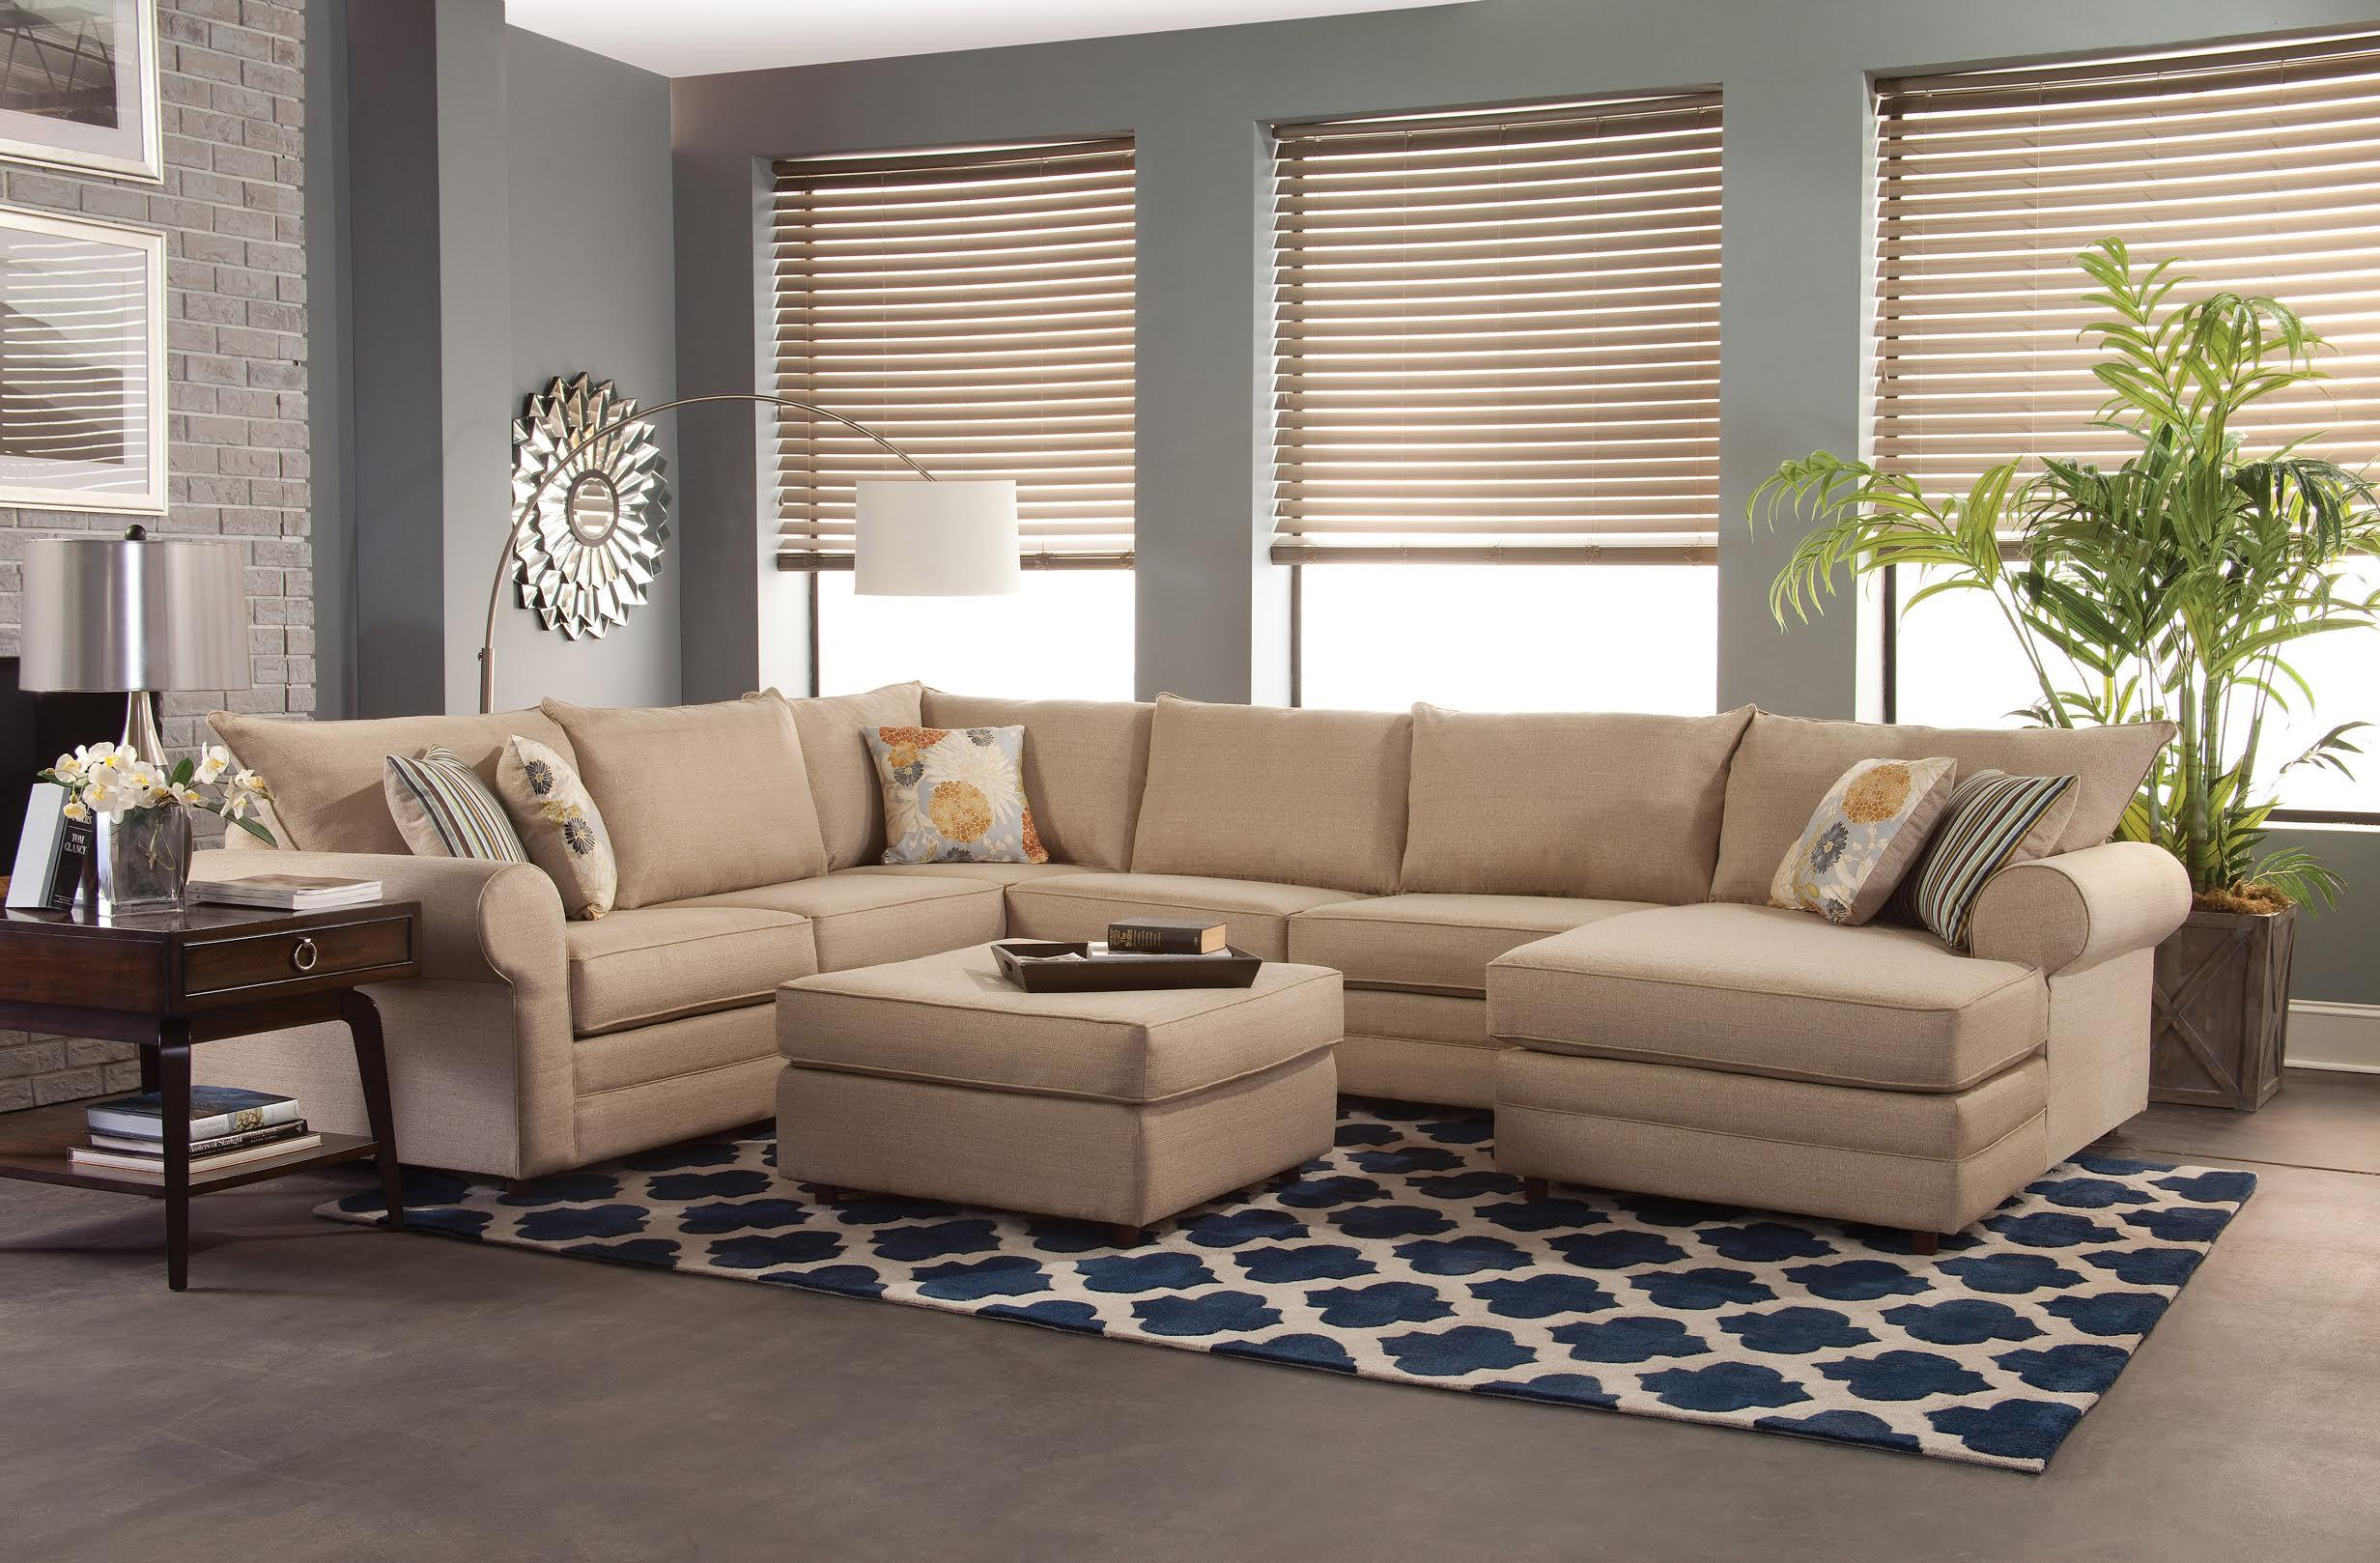 Belfort Essentials Monticello Casual Sectional Sofa - Item Number 5100-20L+10C+ : furniture stores sectionals - Sectionals, Sofas & Couches